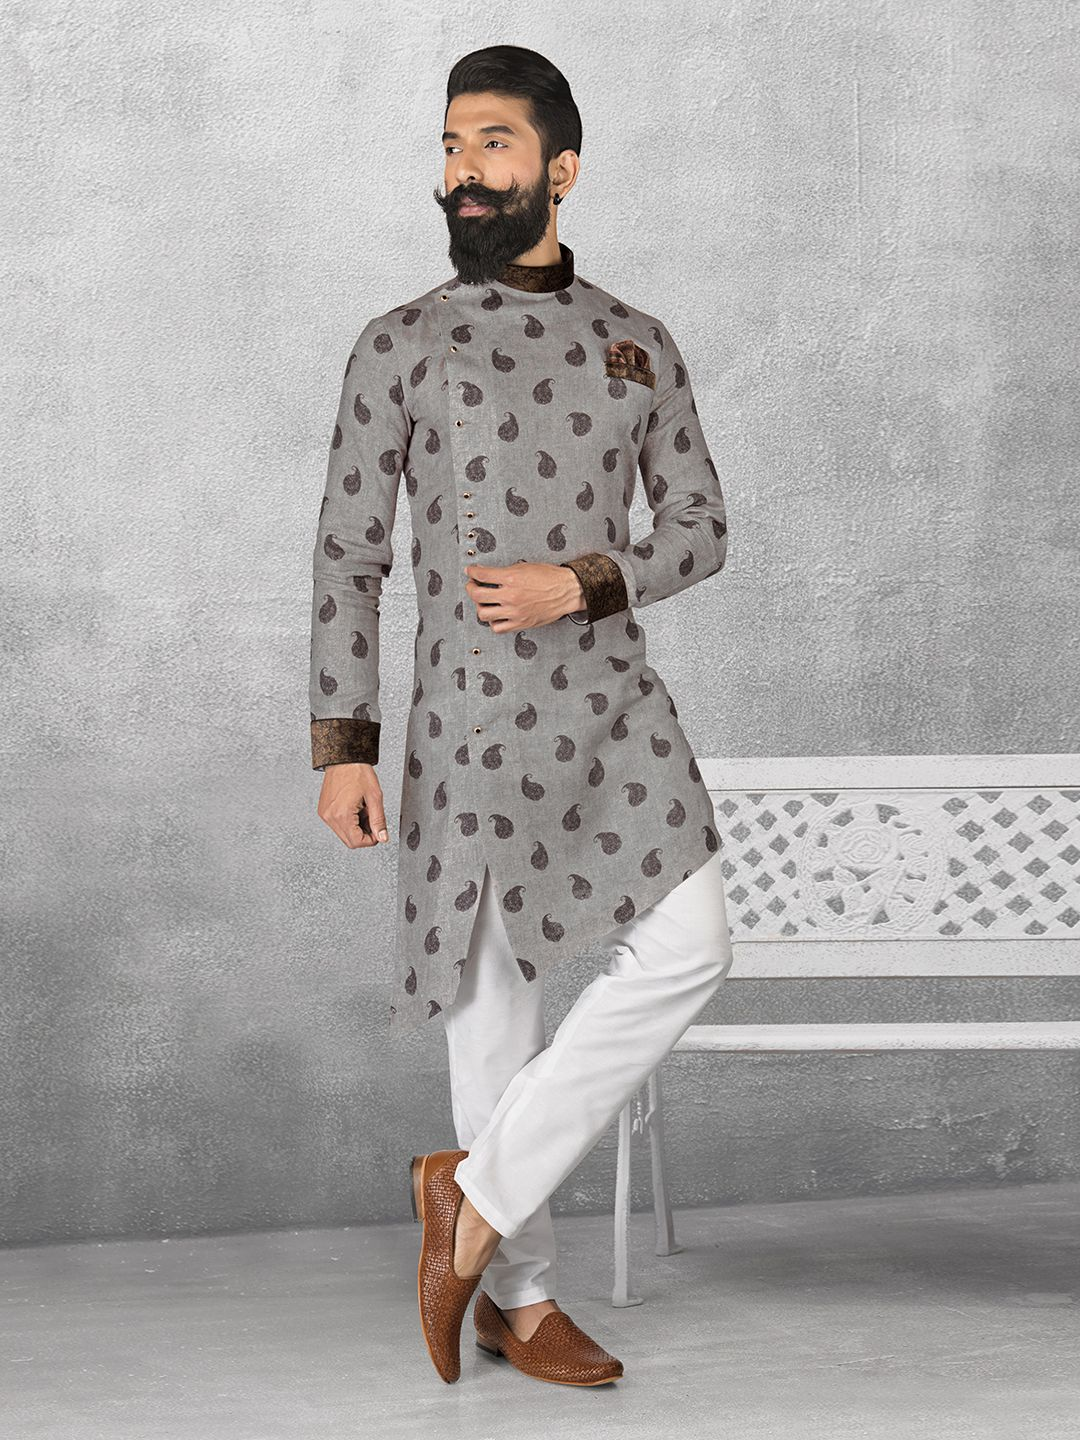 f2b4f9144e Shop Linen grey color printed kurta suit online from G3fashion India. Brand  - G3, Product code - G3-MKS0510, Price - 5295, Color - Grey, Fabric - Linen,